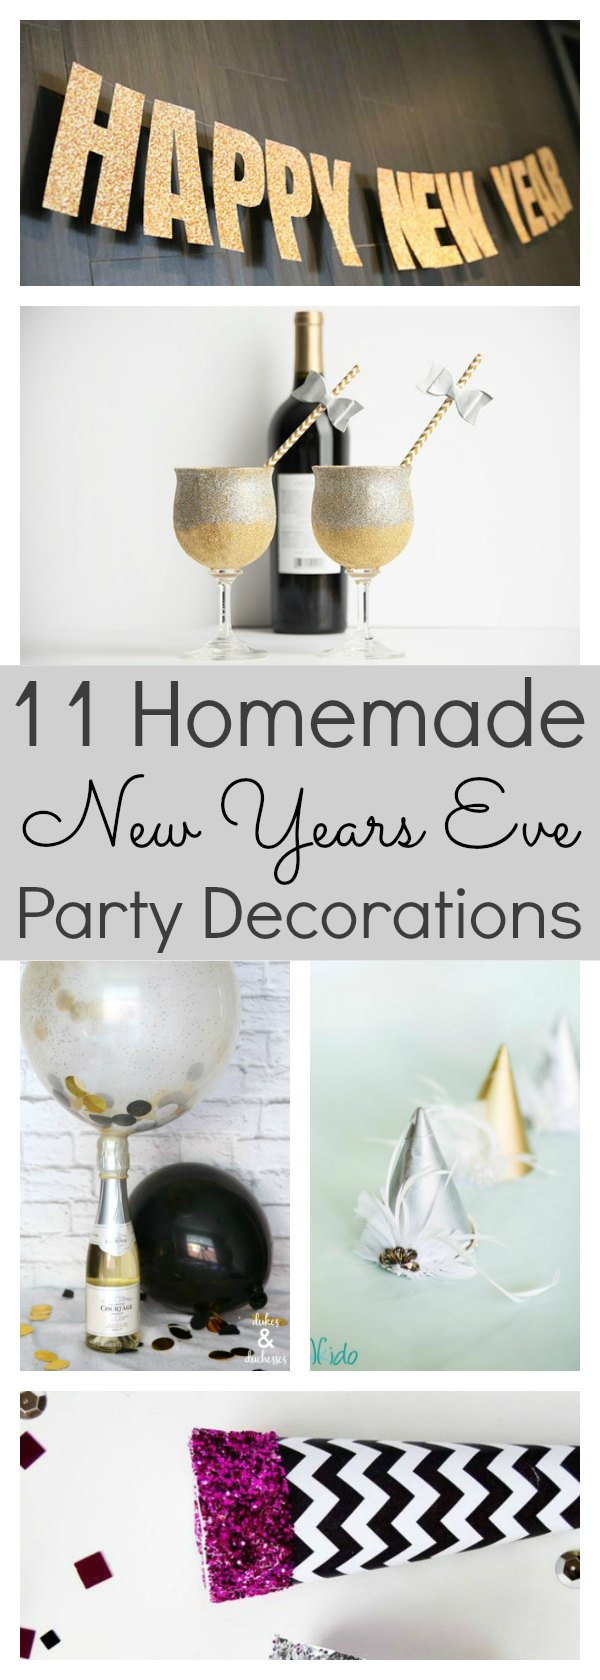 homemade new years eve party decorations